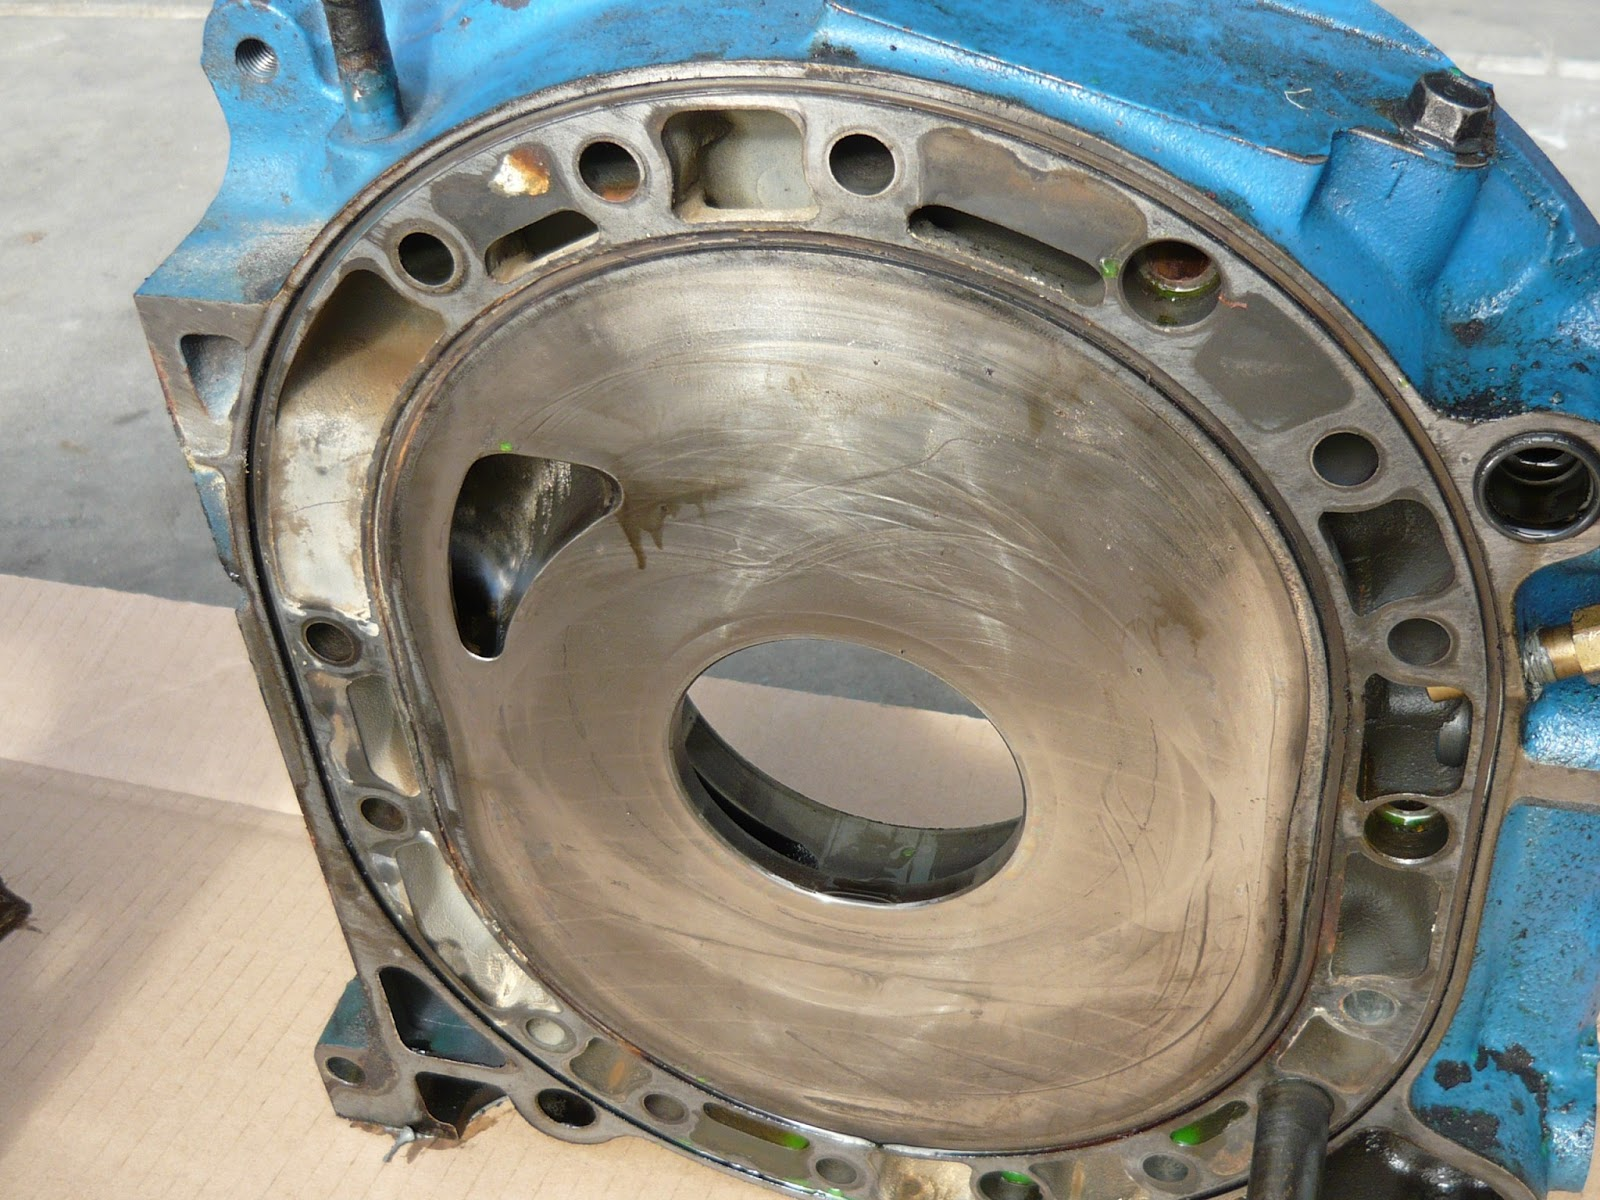 Christie Pacific Case History Rx7 Rotary Engine Meltdown Timing Belt All The Damaged Parts In A Row